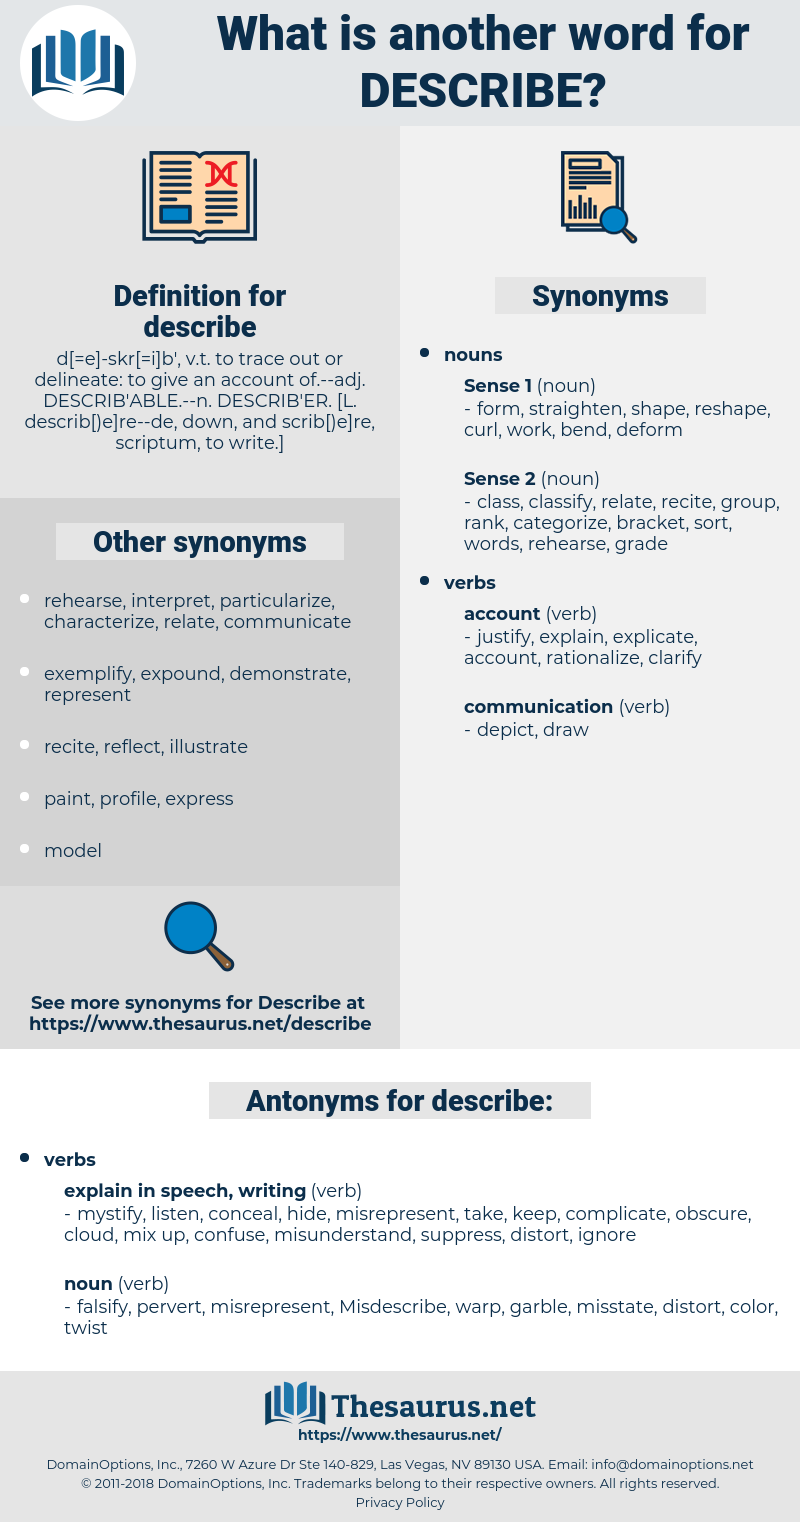 image freeuse download Drawing synonyms distorted. For describe antonyms thesaurus